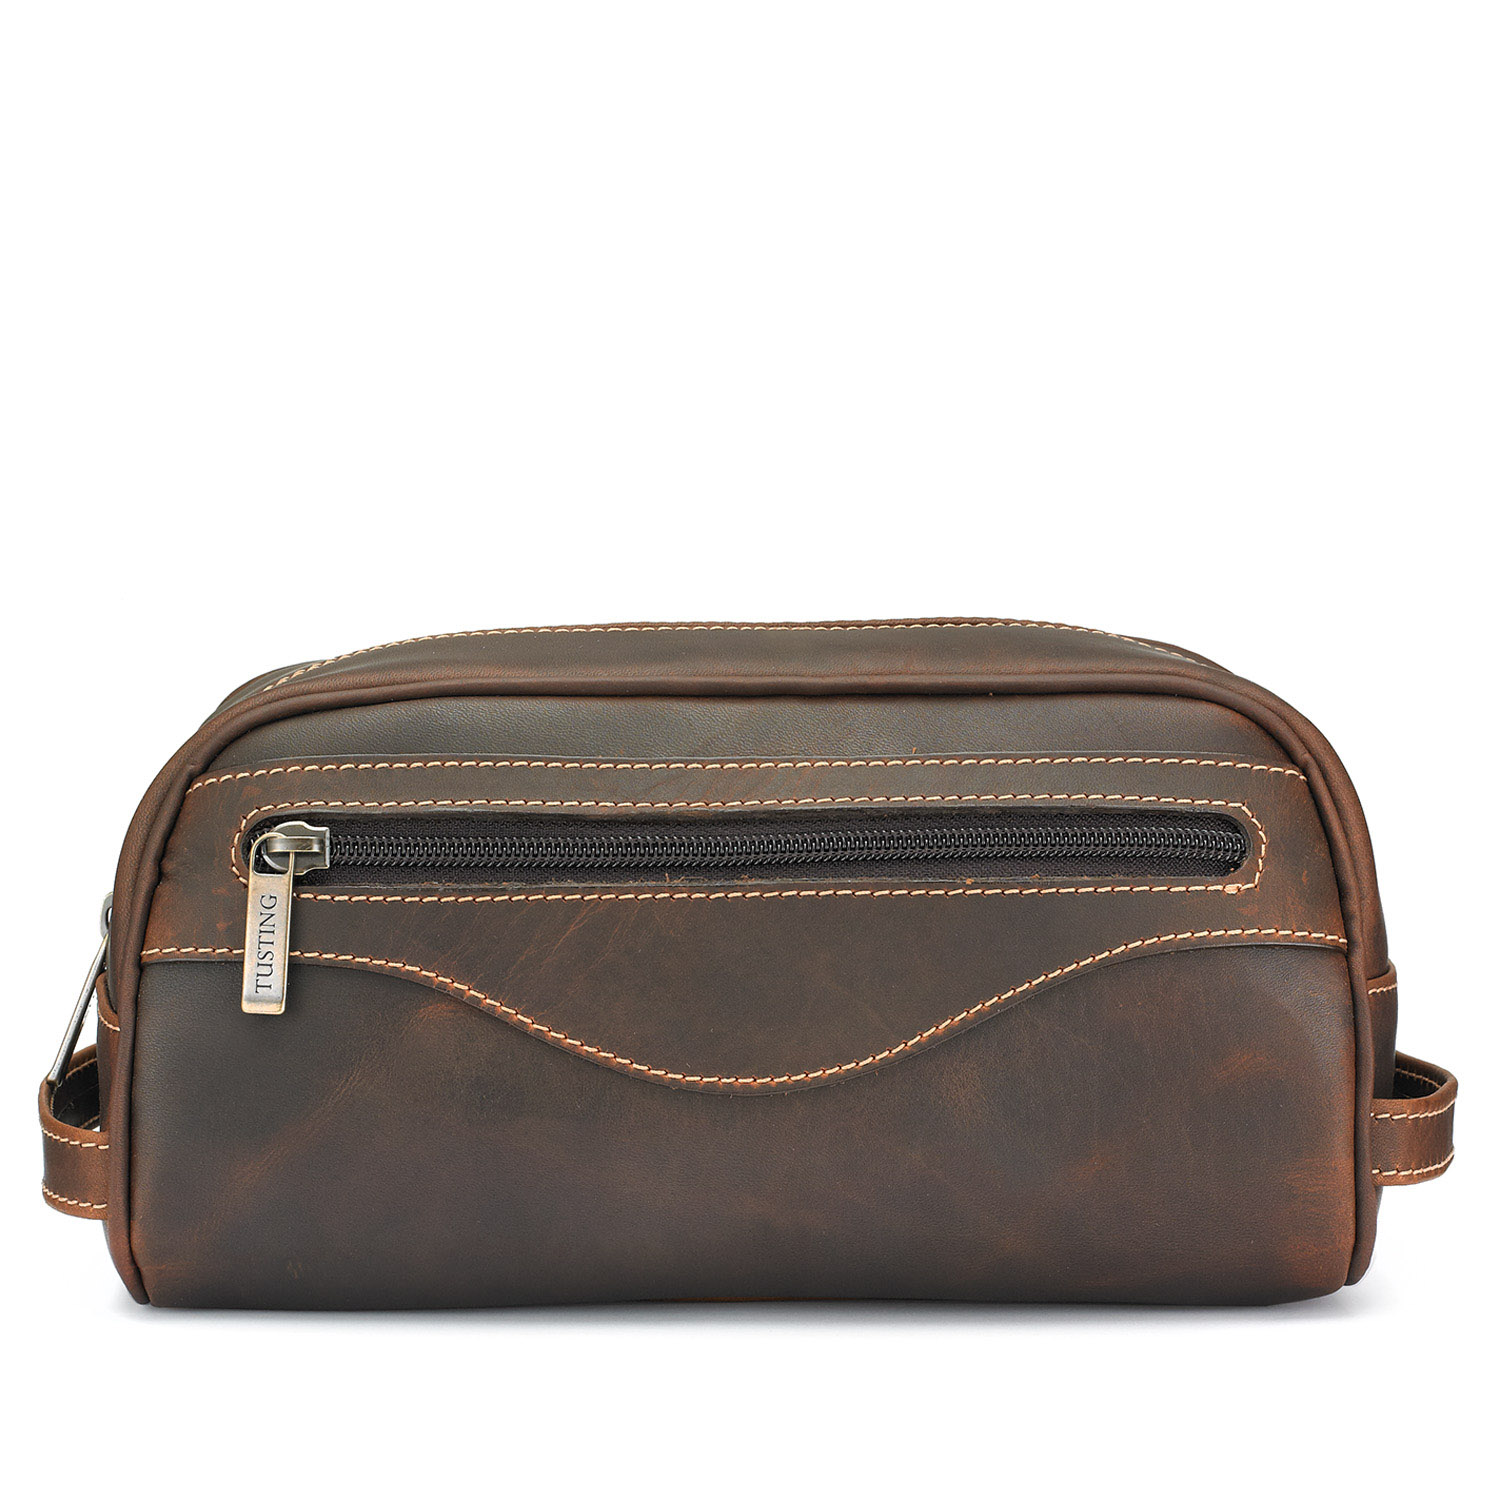 Tusting Leather Washbag in Sundance Oiled Leather